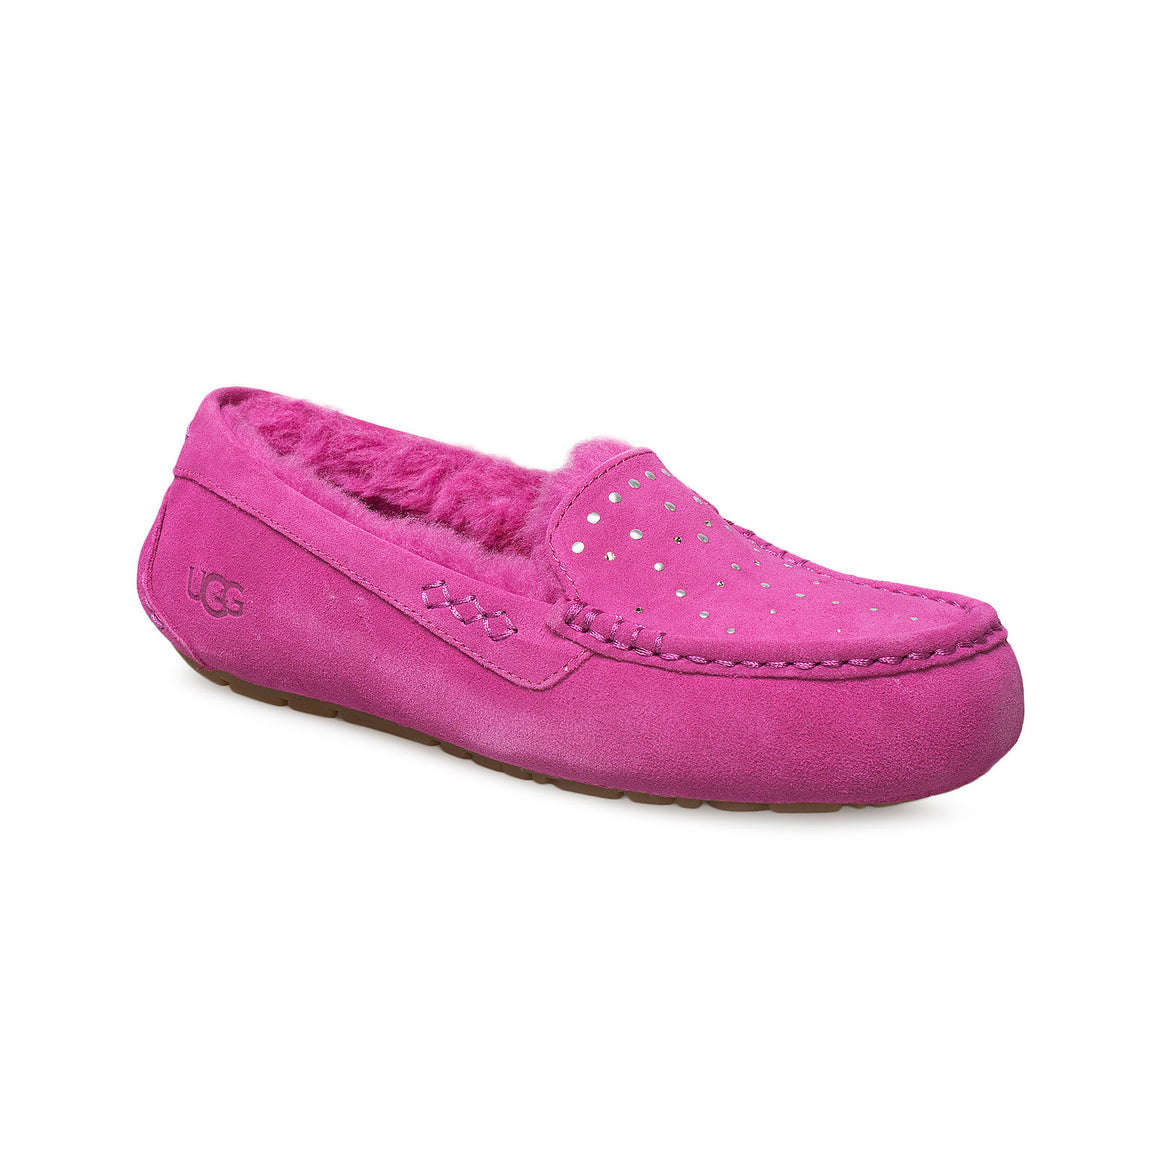 UGG Ansley Studded Fuchsia Slippers - Women's